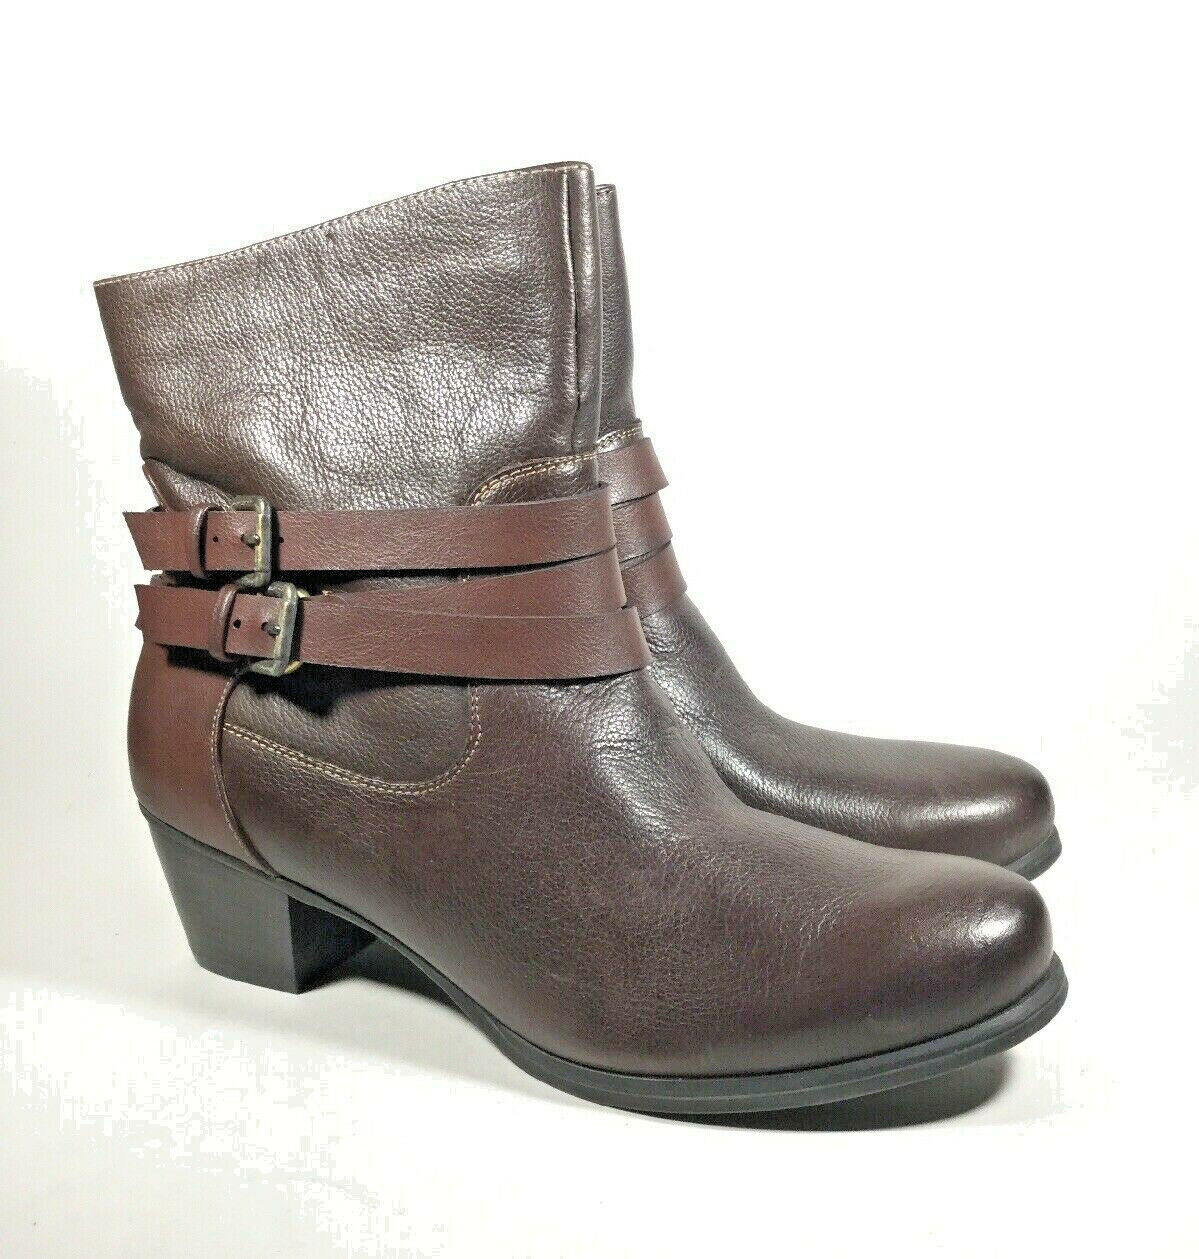 M4757 New Women's Naturalizer Katrina Brown Leather Ankle Bootie US 9 M